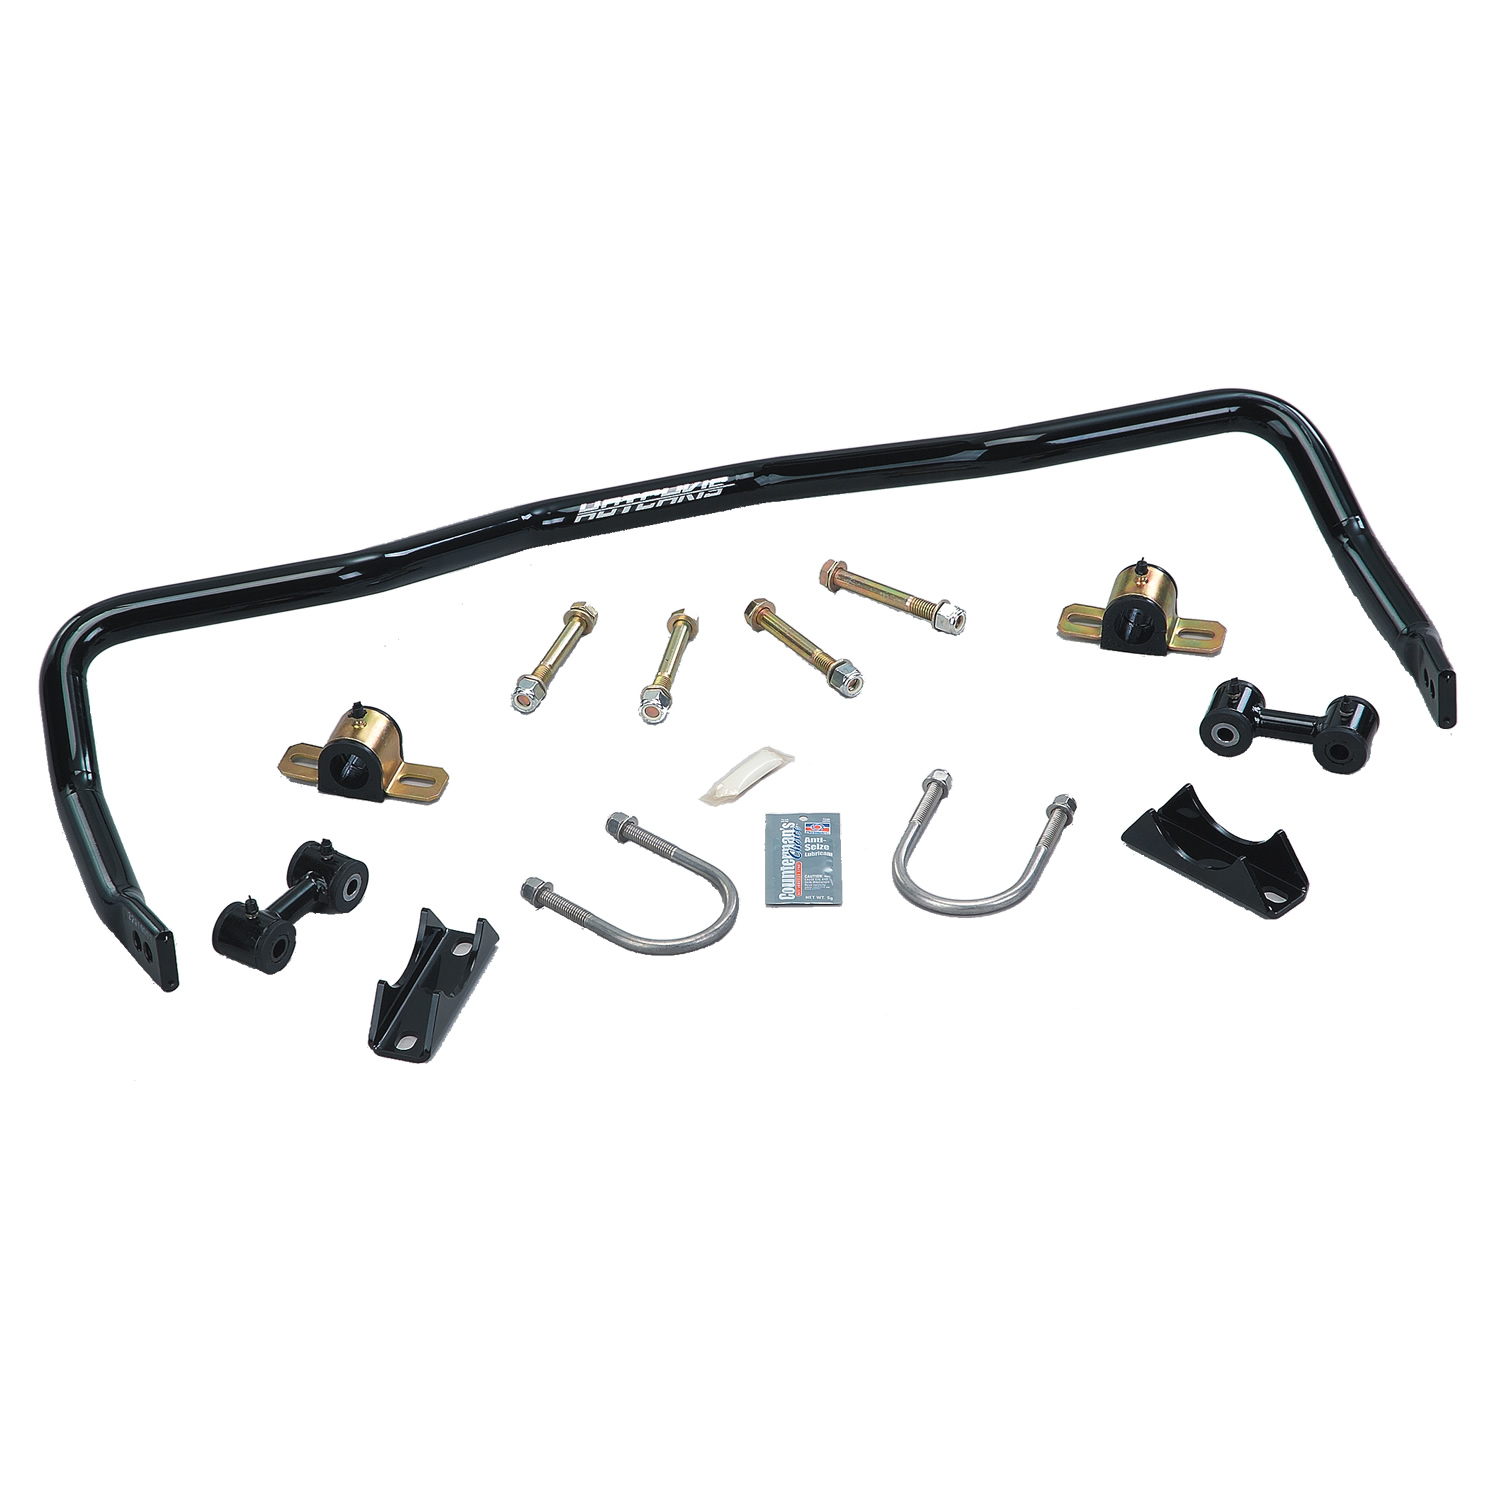 1978-1988 GM G-Body Extreme Sport Rear Sway Bar from Hotchkis Sport Suspension